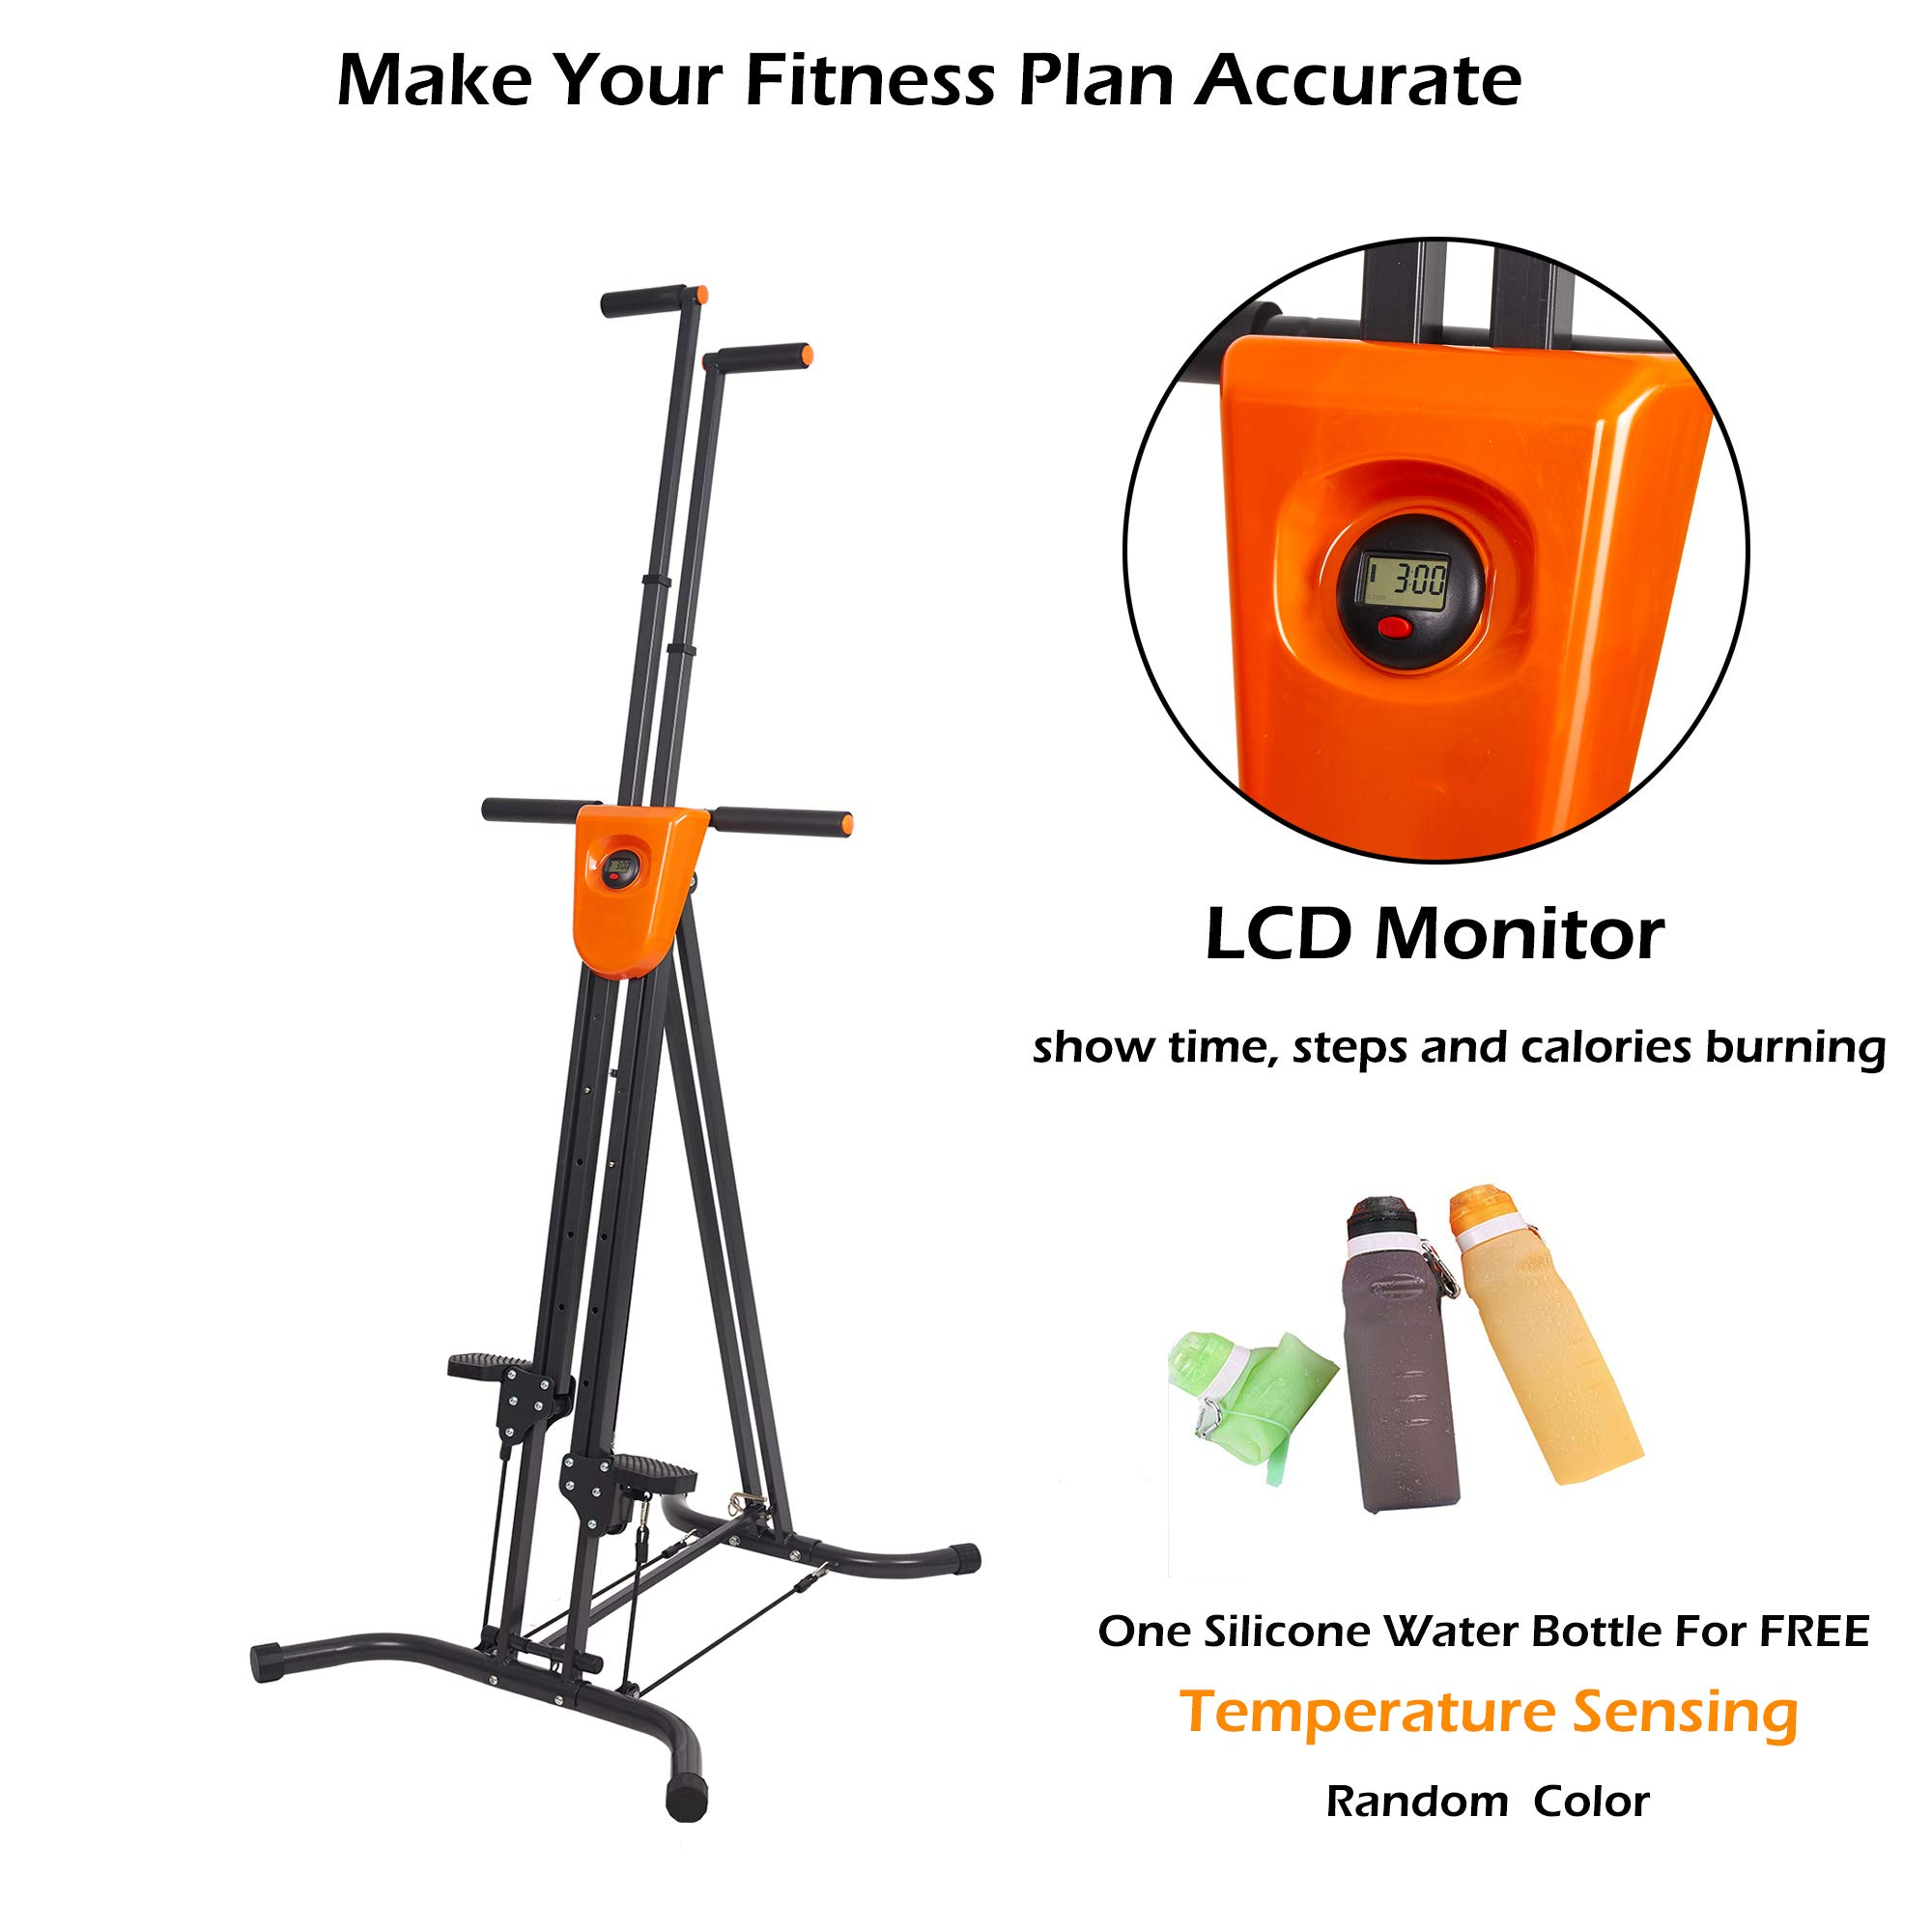 Lucky Tree Stair Climber Exercise Machine Vertical Climber Stairs Gym Home Fitness Folding Stair Stepper Adjustable Height for Women Man Full Total Body Workout by Lucky Tree (Image #2)